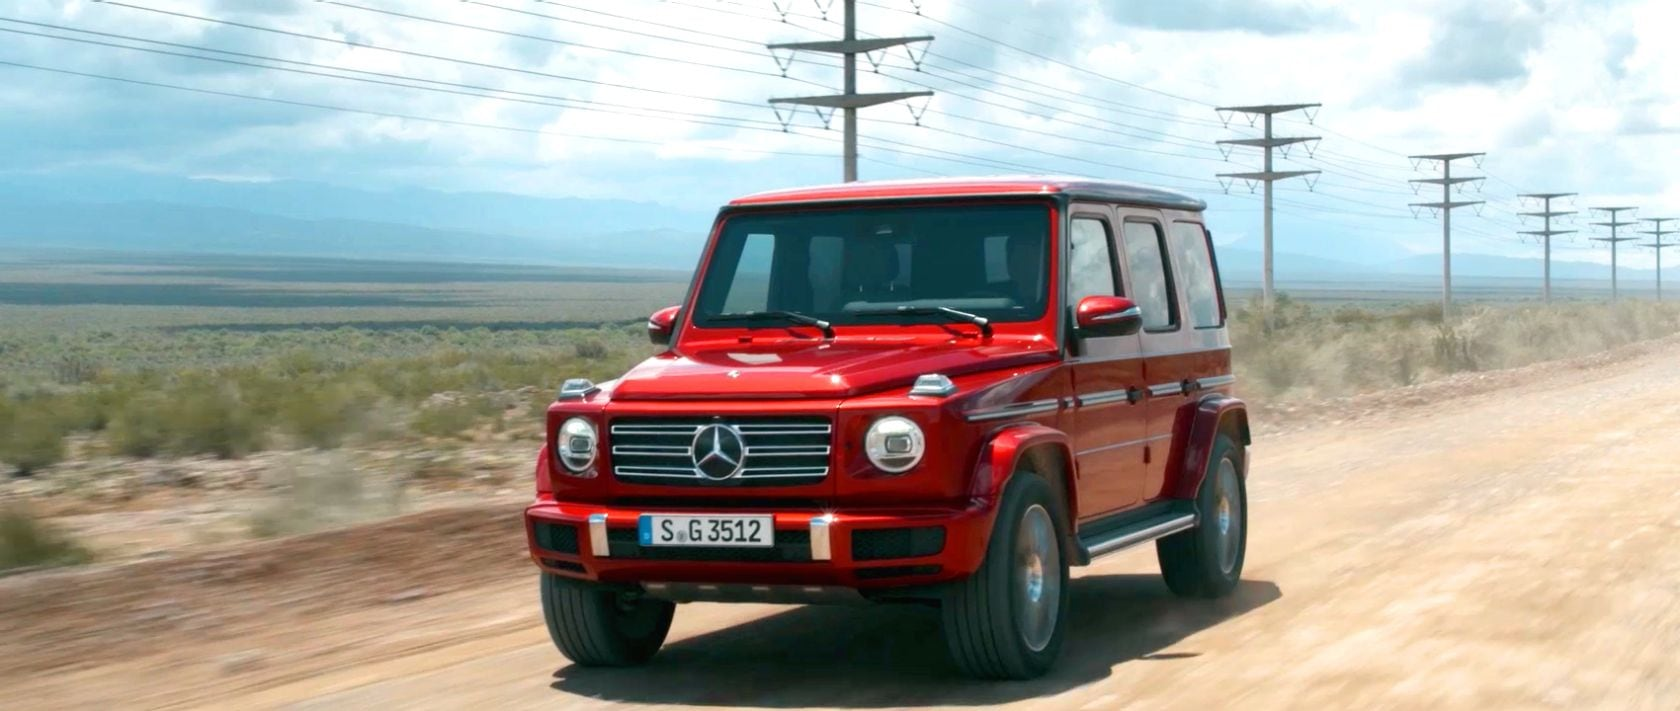 The Mercedes-Benz G 350 d (W 463) in designo hyacinth red metallic on a dirt road in Argentina.